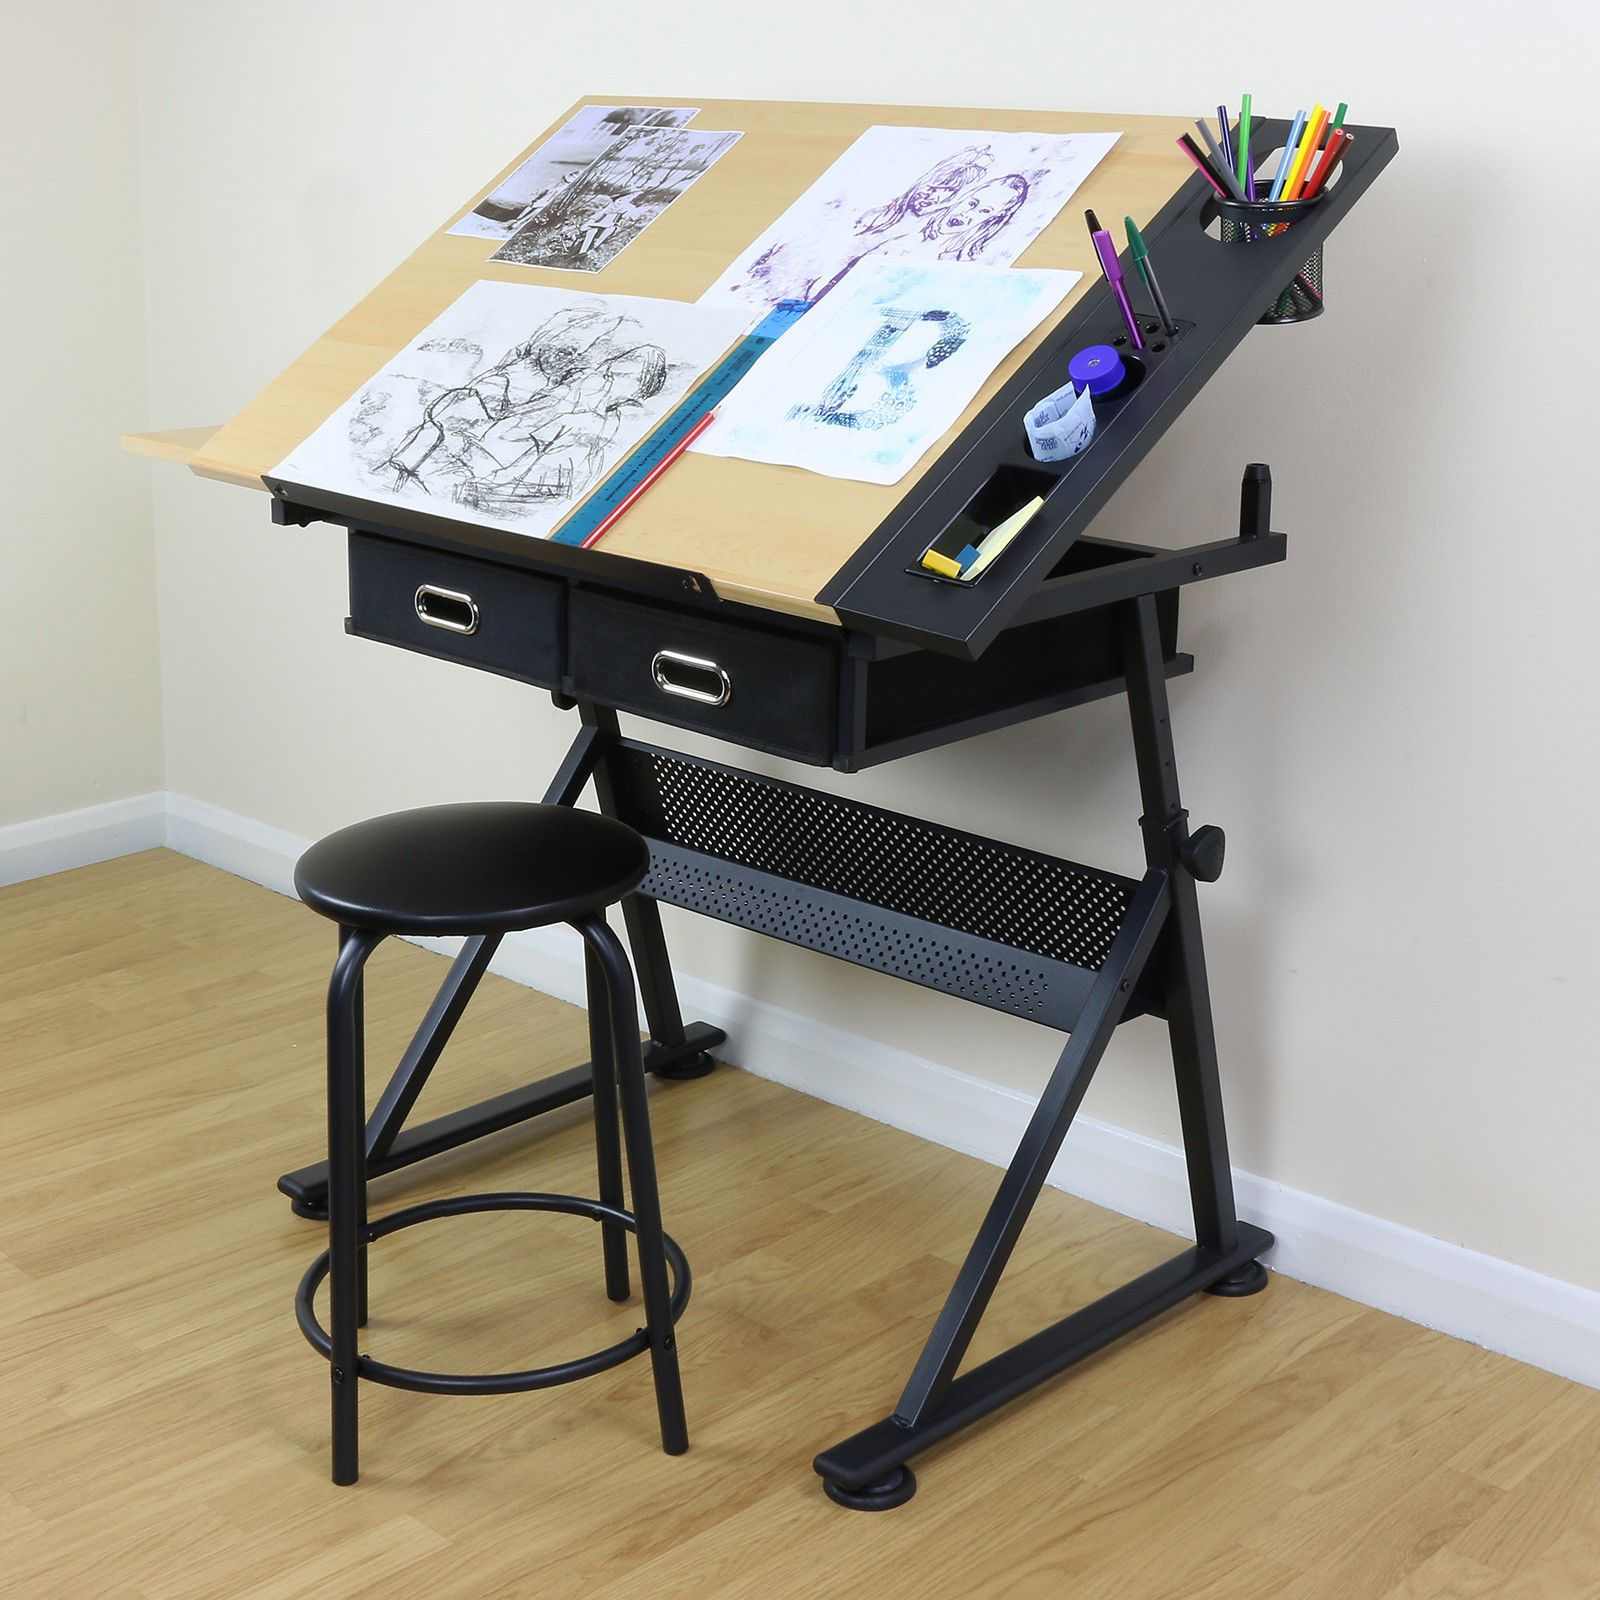 Adjustable Drawing Board Drafting Table With Stool Craft Architect Desk Stand Ebay Architects Desk Architect Table Drawing Desk